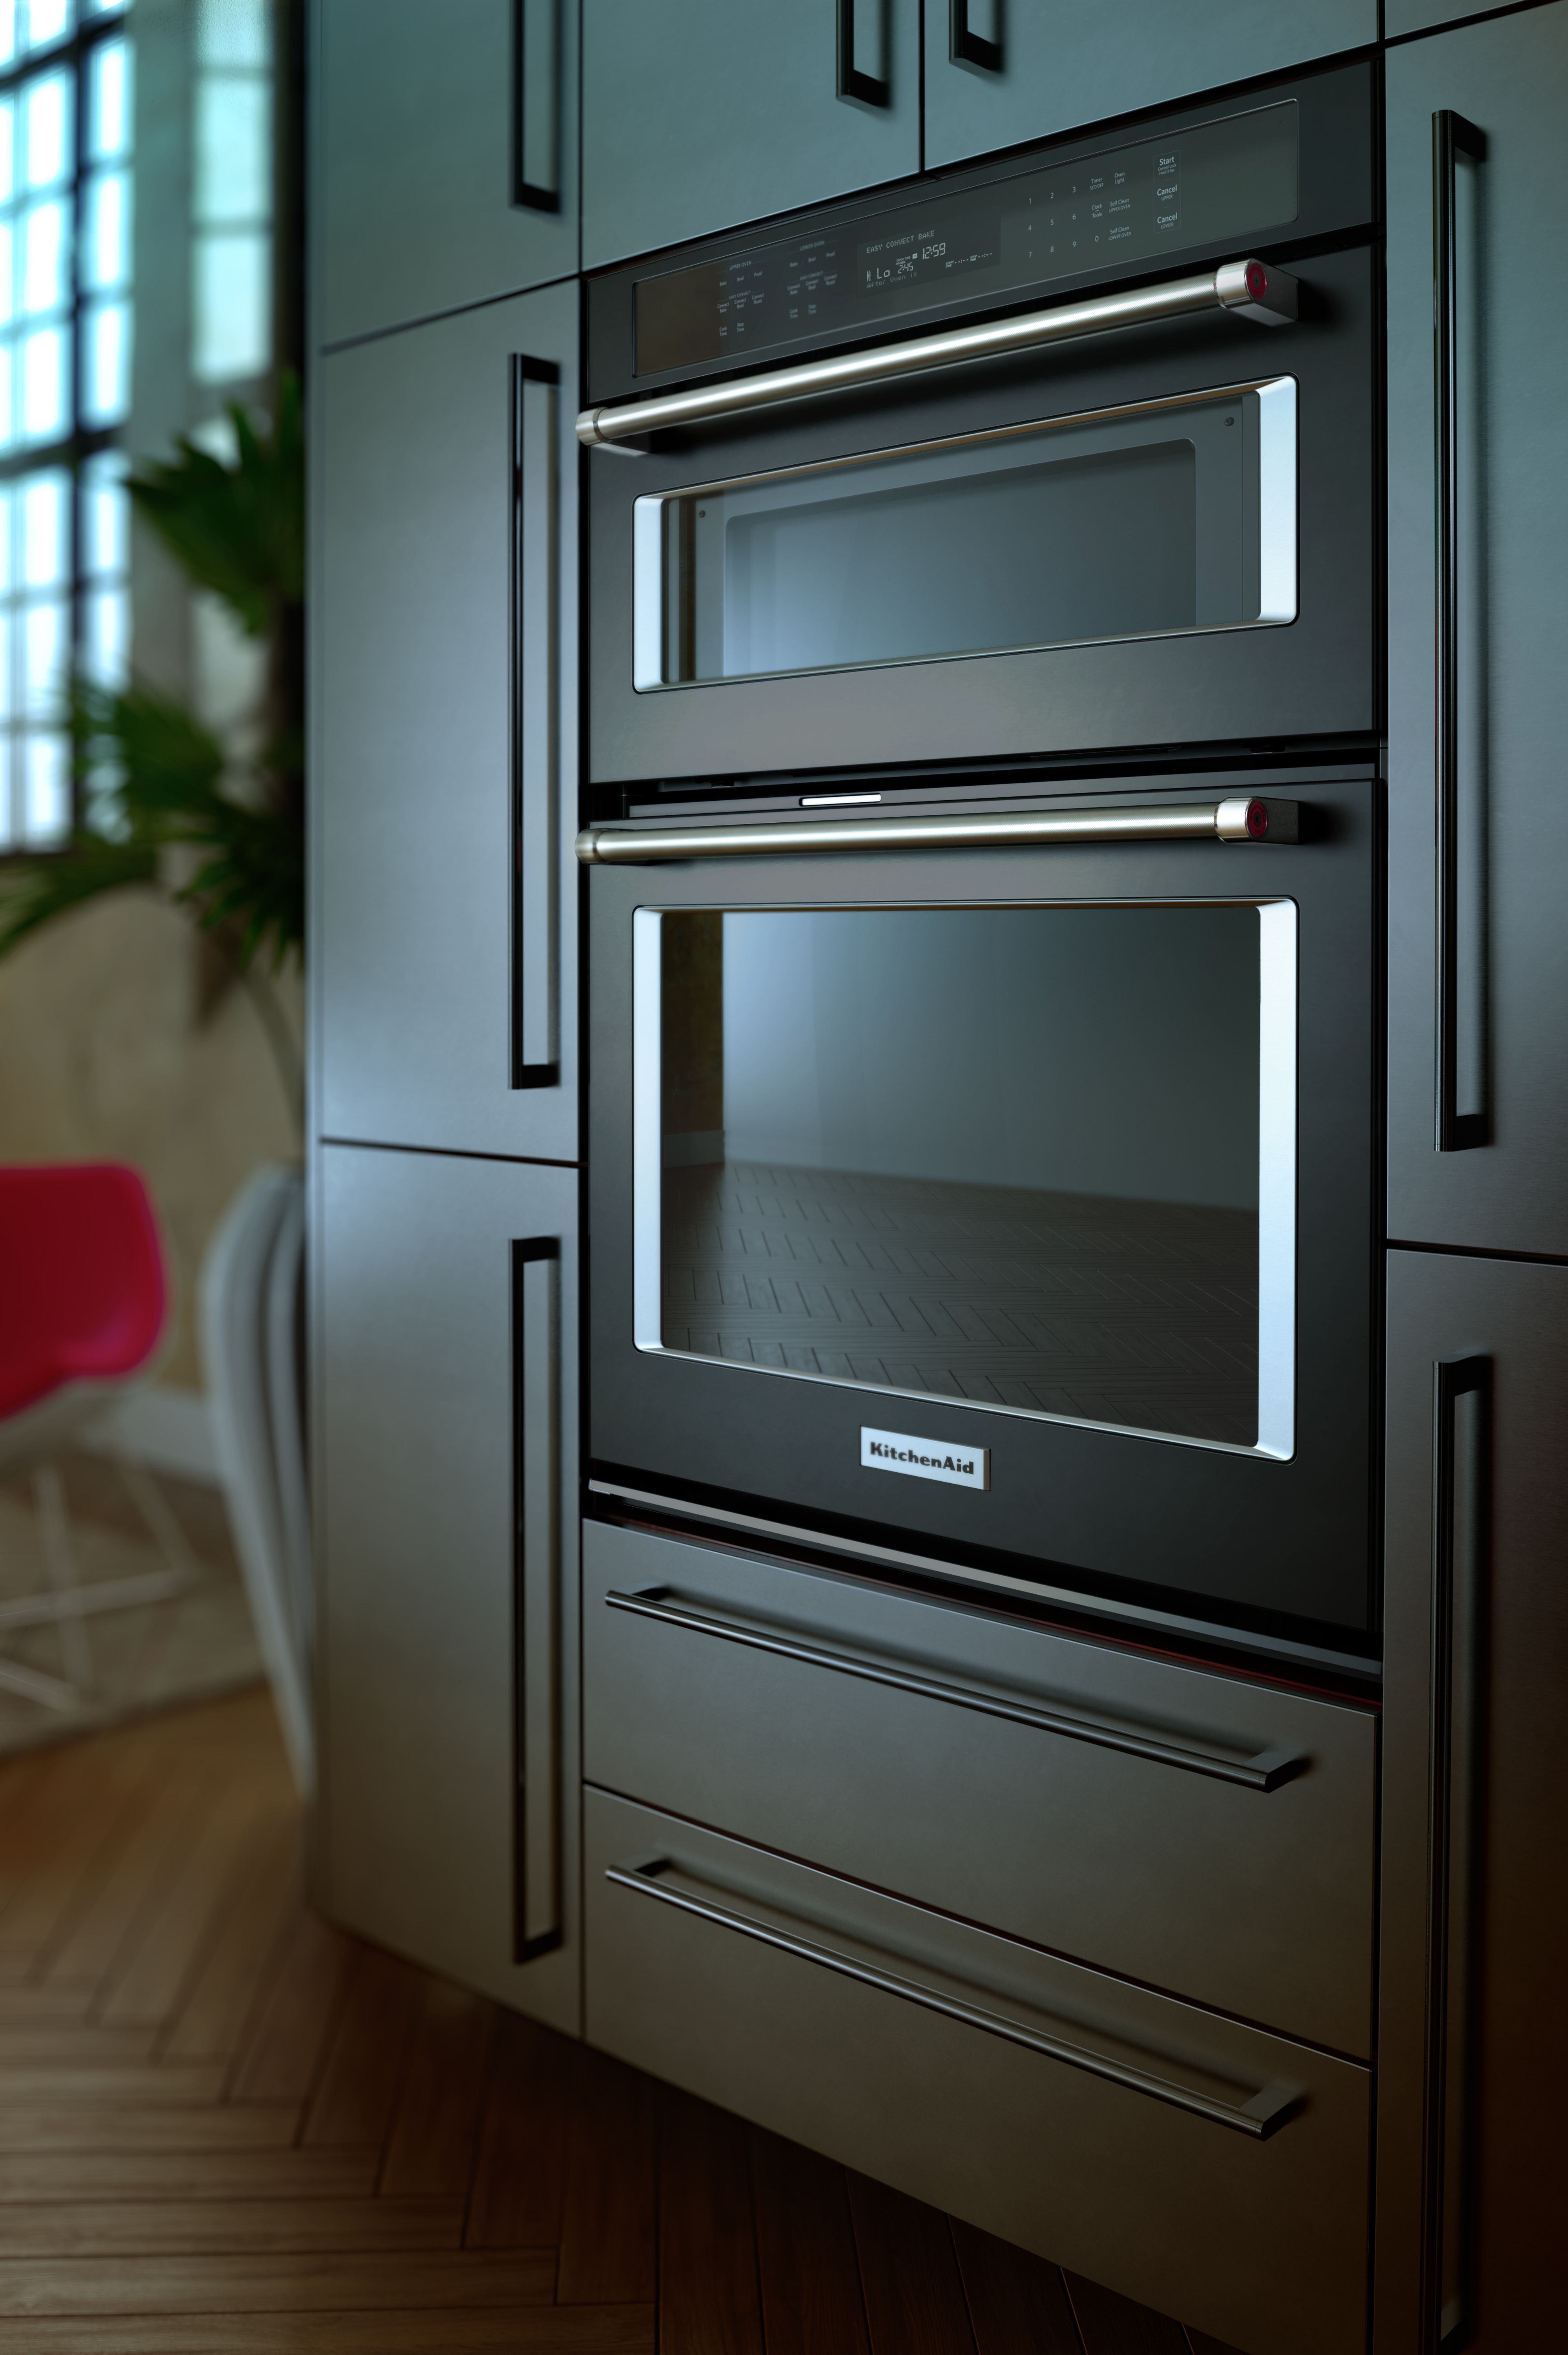 Kitchenaid Black 30 Electric Oven Microwave Combo Built In Black